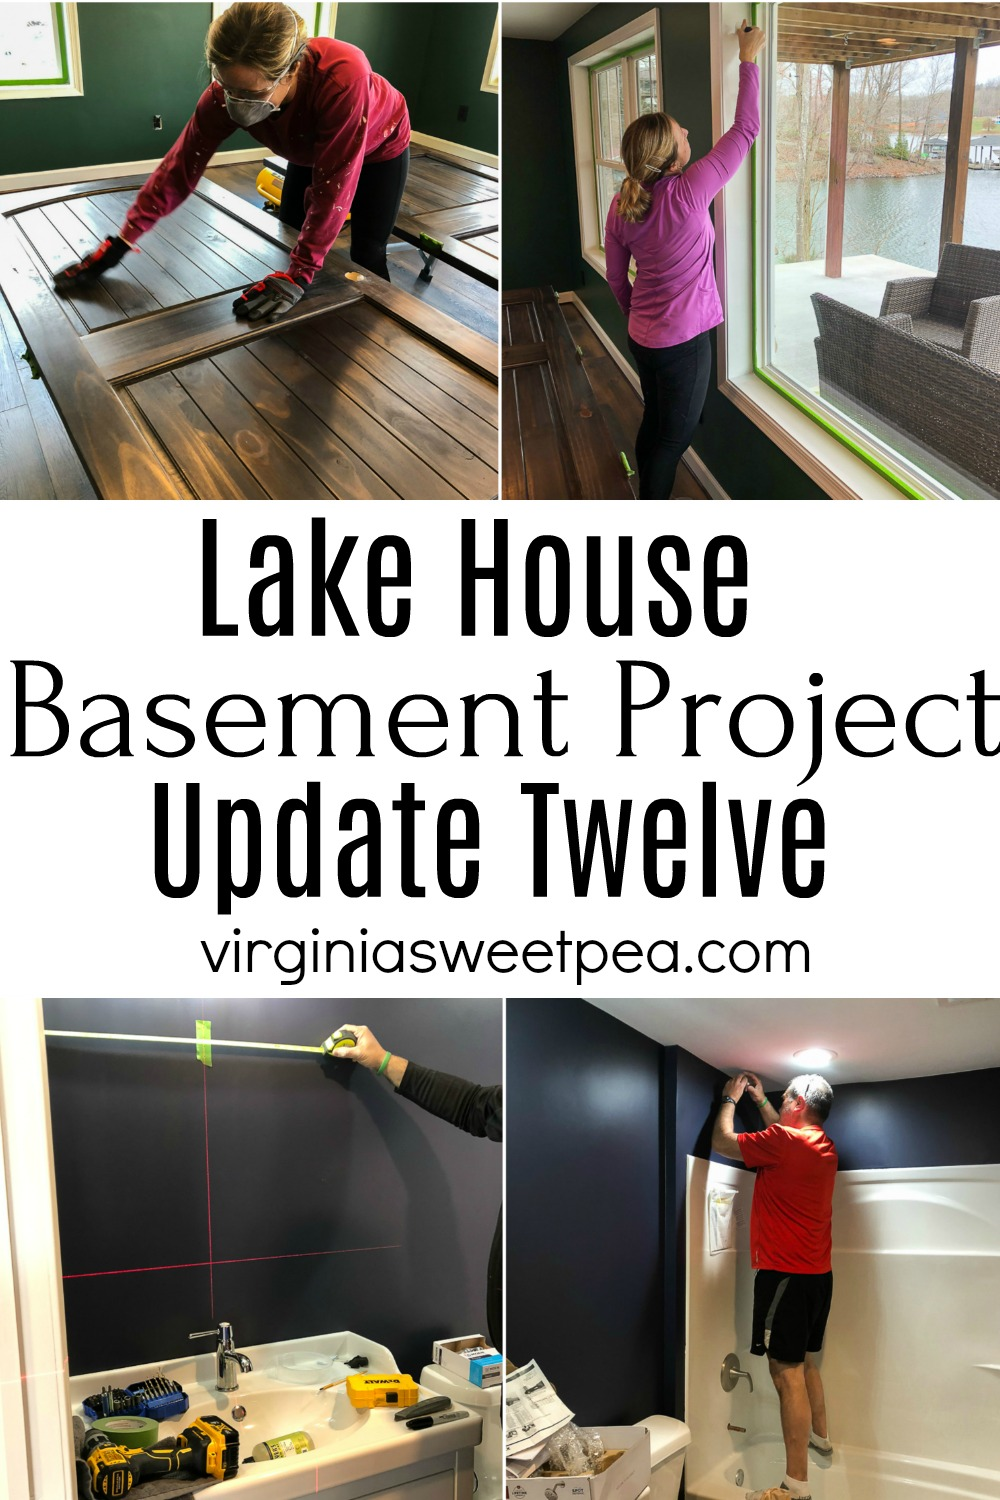 Lake House Basement Project - Update Twelve - Follow along as we transform an unfinished basement into a family room, bathroom, and bedroom. #smithmountainlake #lakehouse #finishing a basement via @spaula